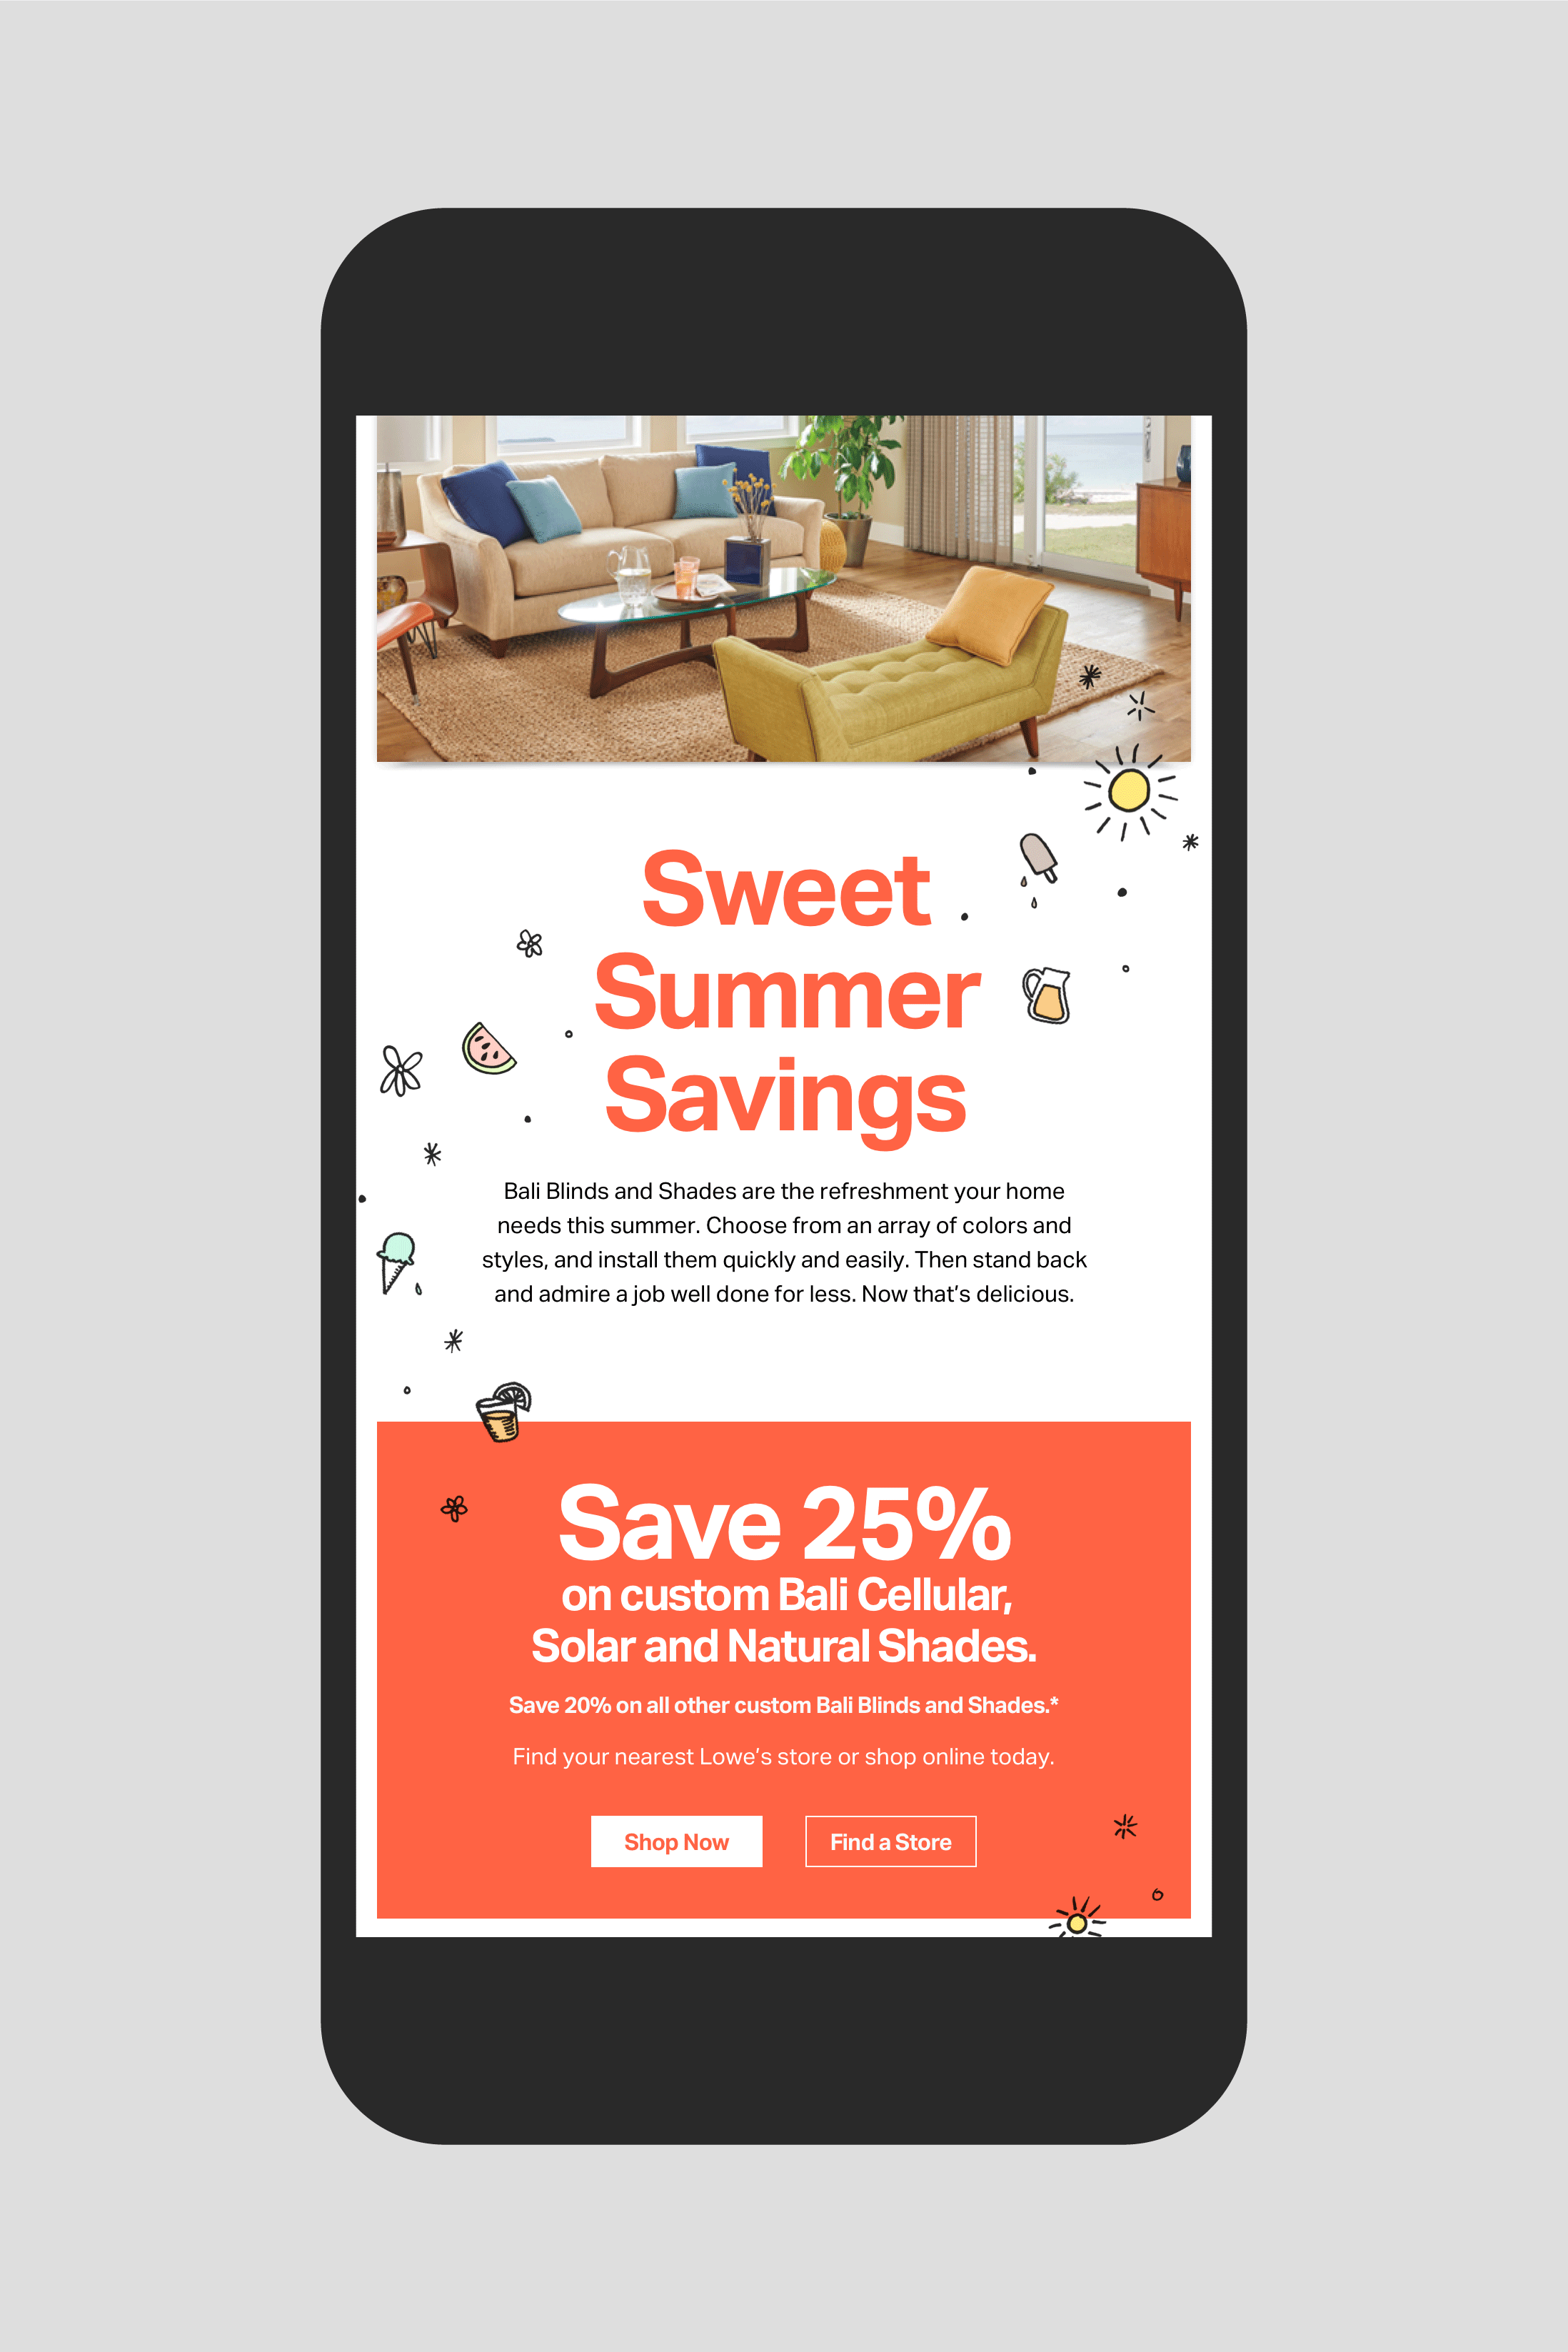 Bali Lowes promotional email: Sweet Summer Savings